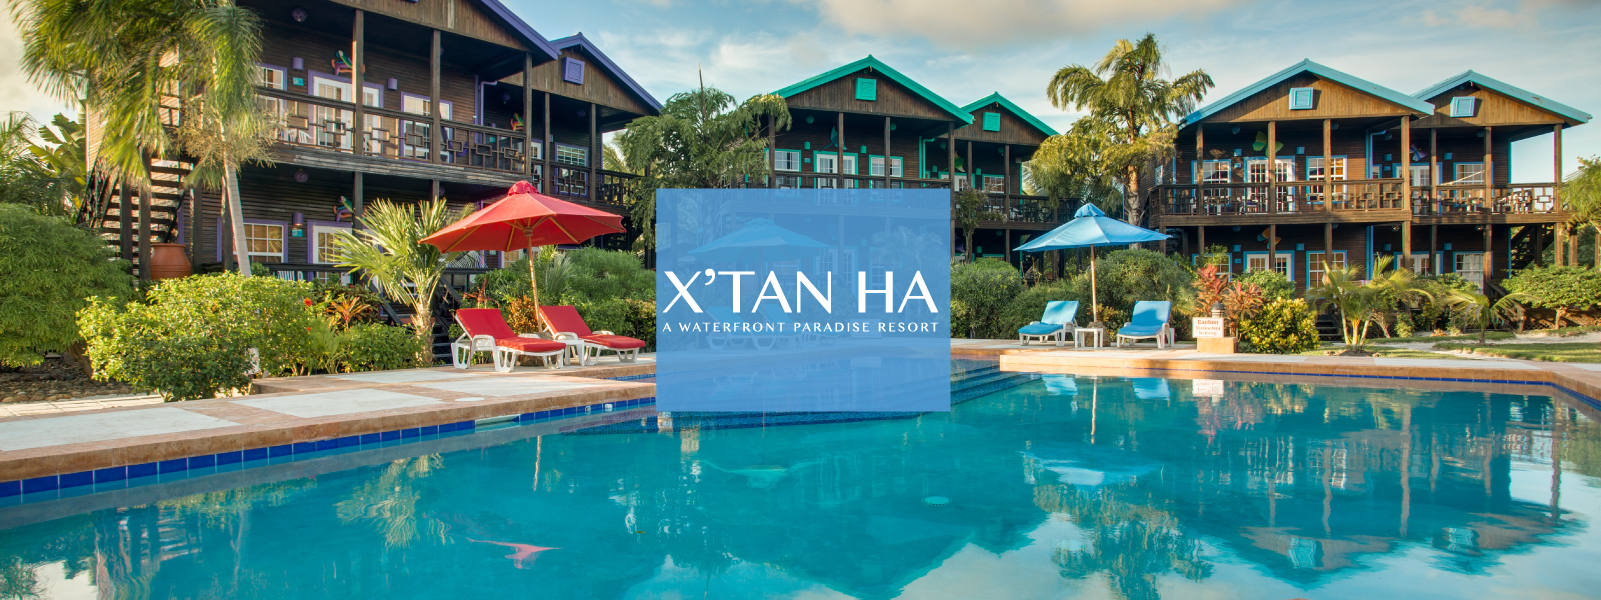 X'tan Ha Resort Pool on Ambergris Caye